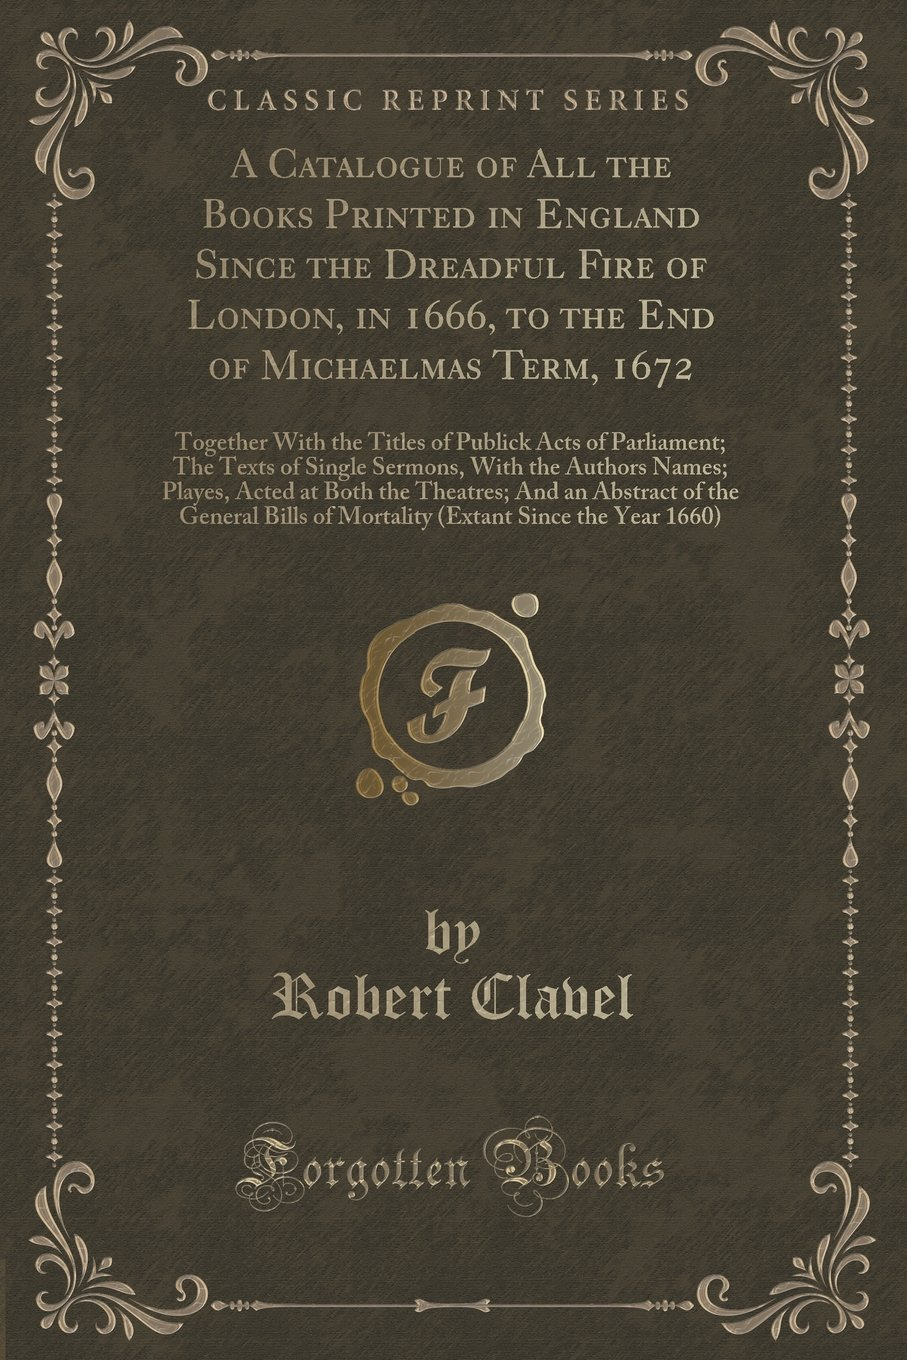 Read Online A Catalogue of All the Books Printed in England Since the Dreadful Fire of London, in 1666, to the End of Michaelmas Term, 1672: Together With the ... With the Authors Names; Playes, Acted at ebook